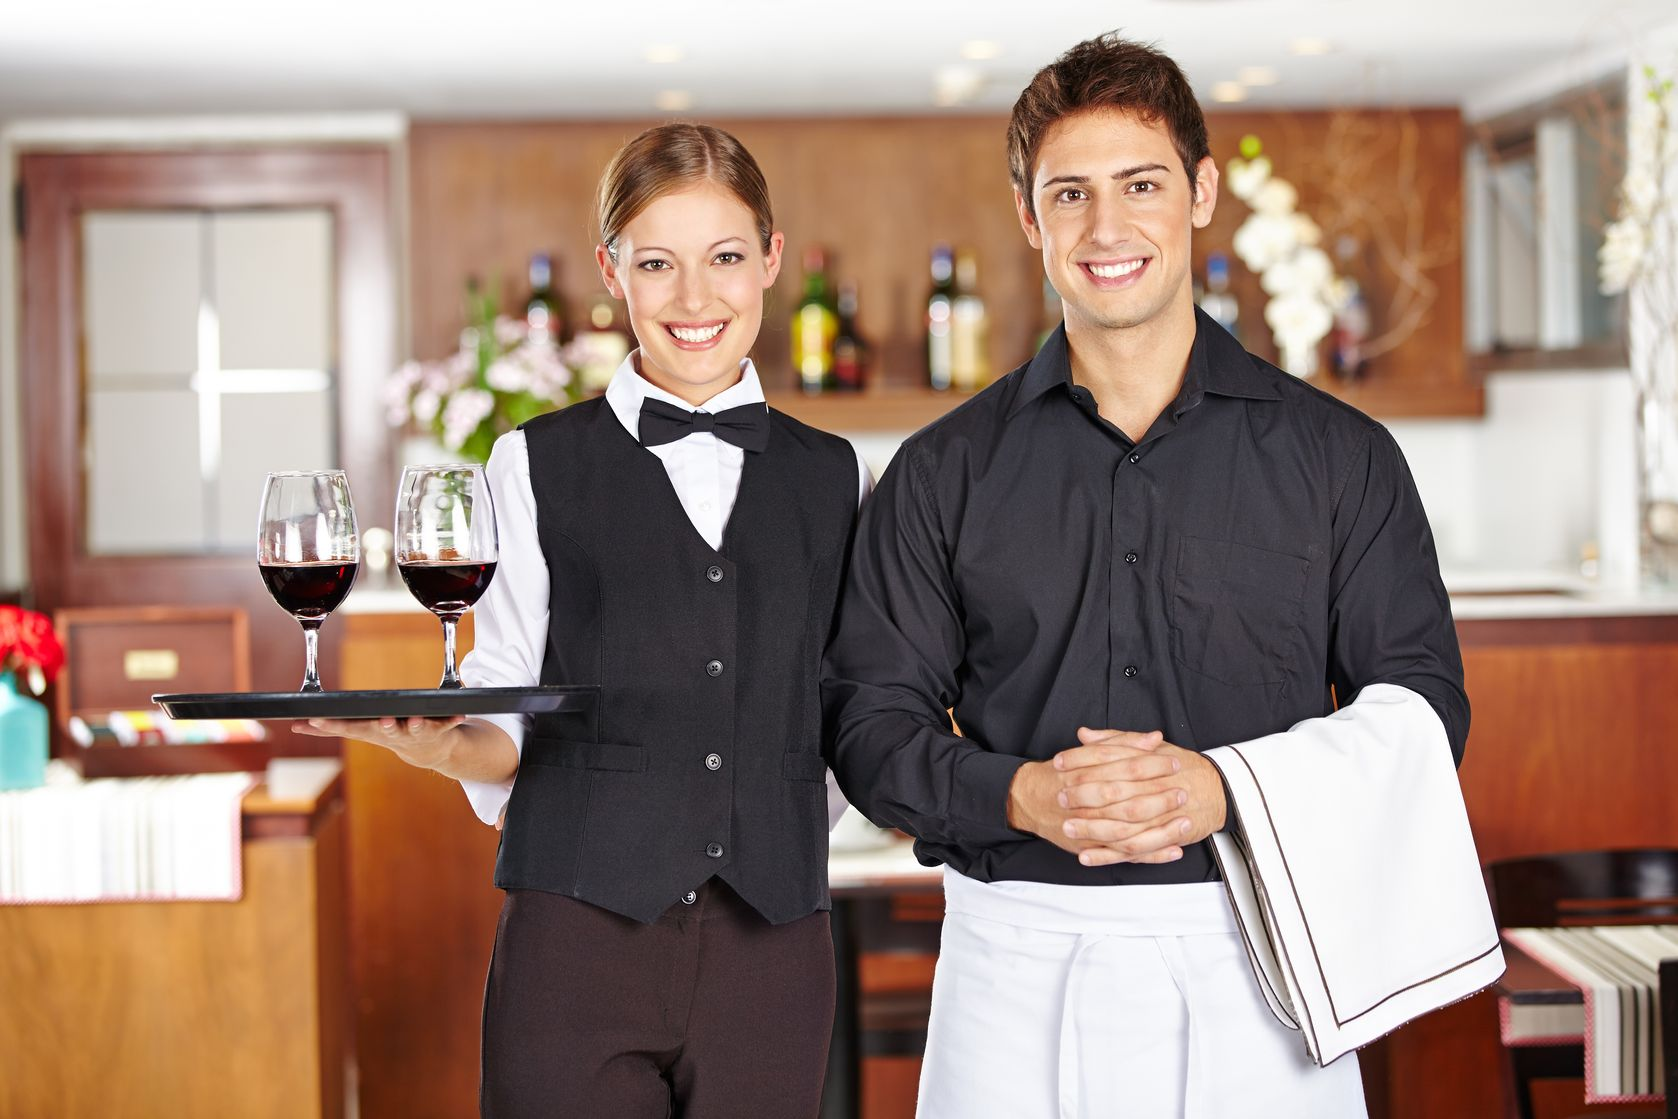 Event and Catering Business for sale in Townsville